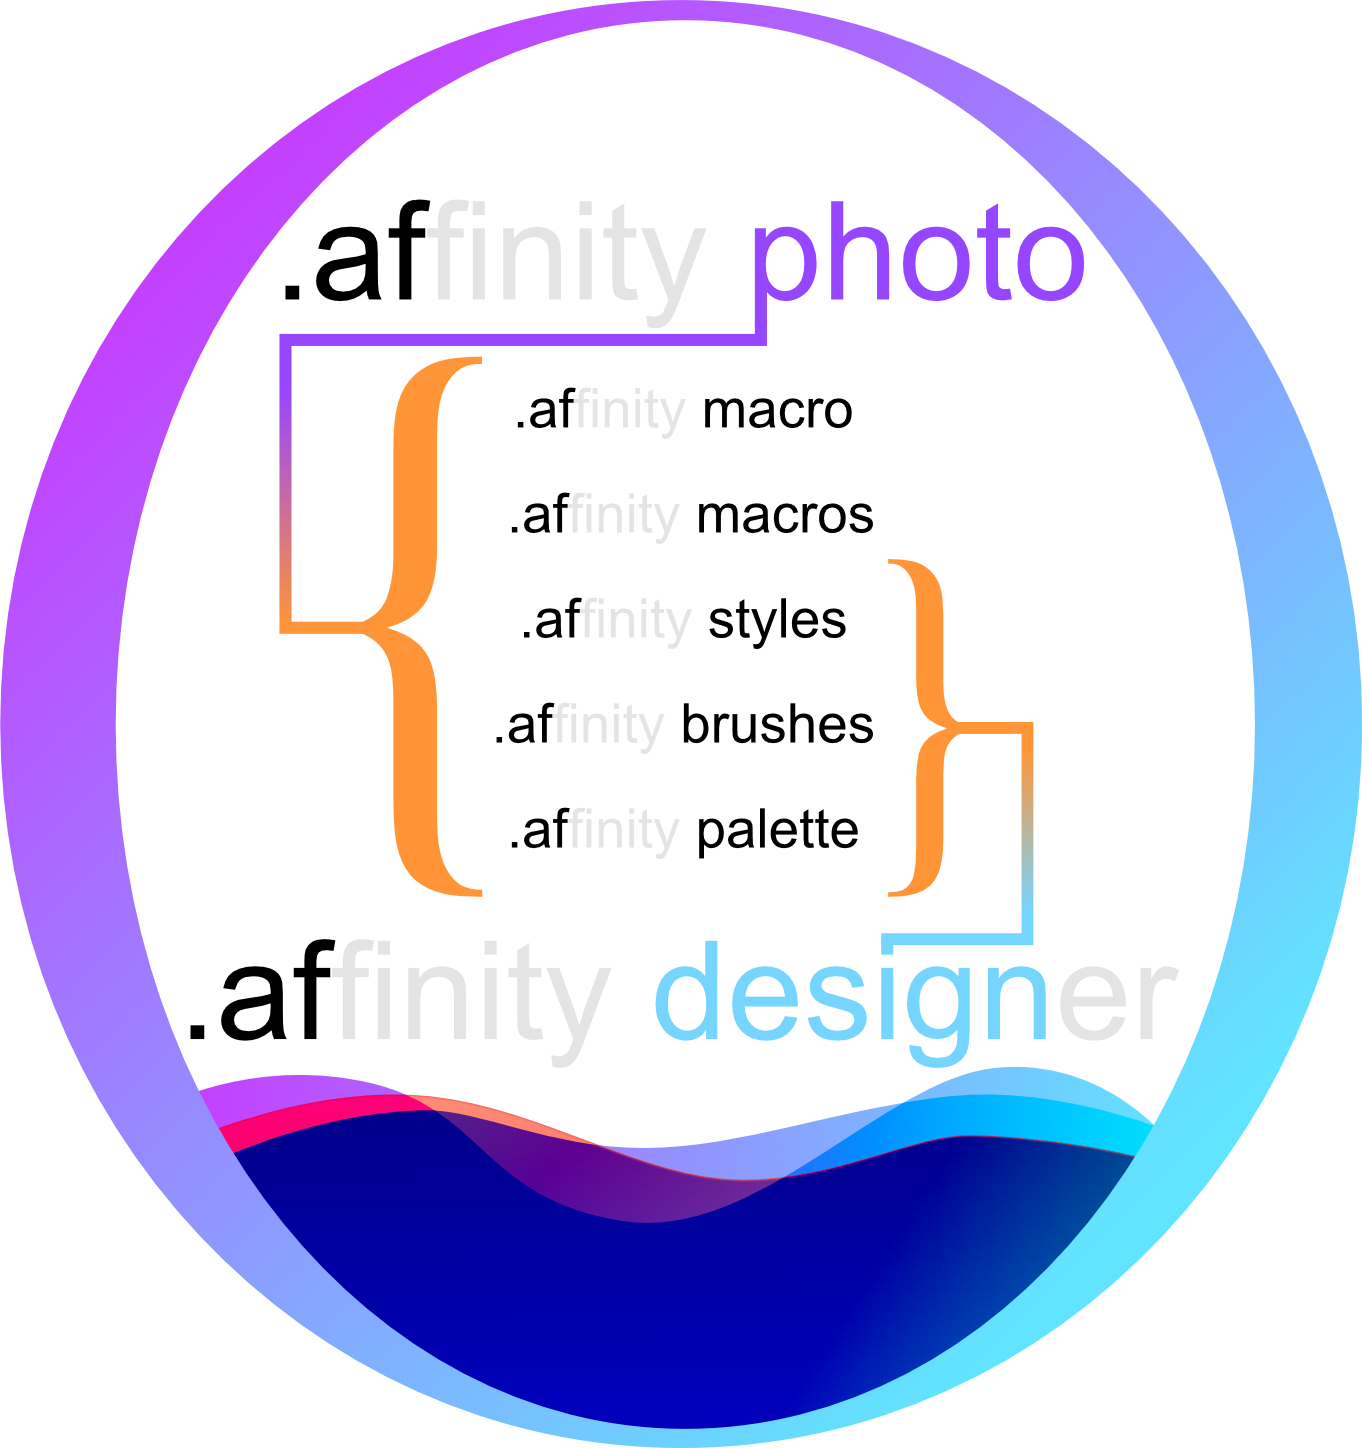 fun exercise: create an infographic on affinity products - share